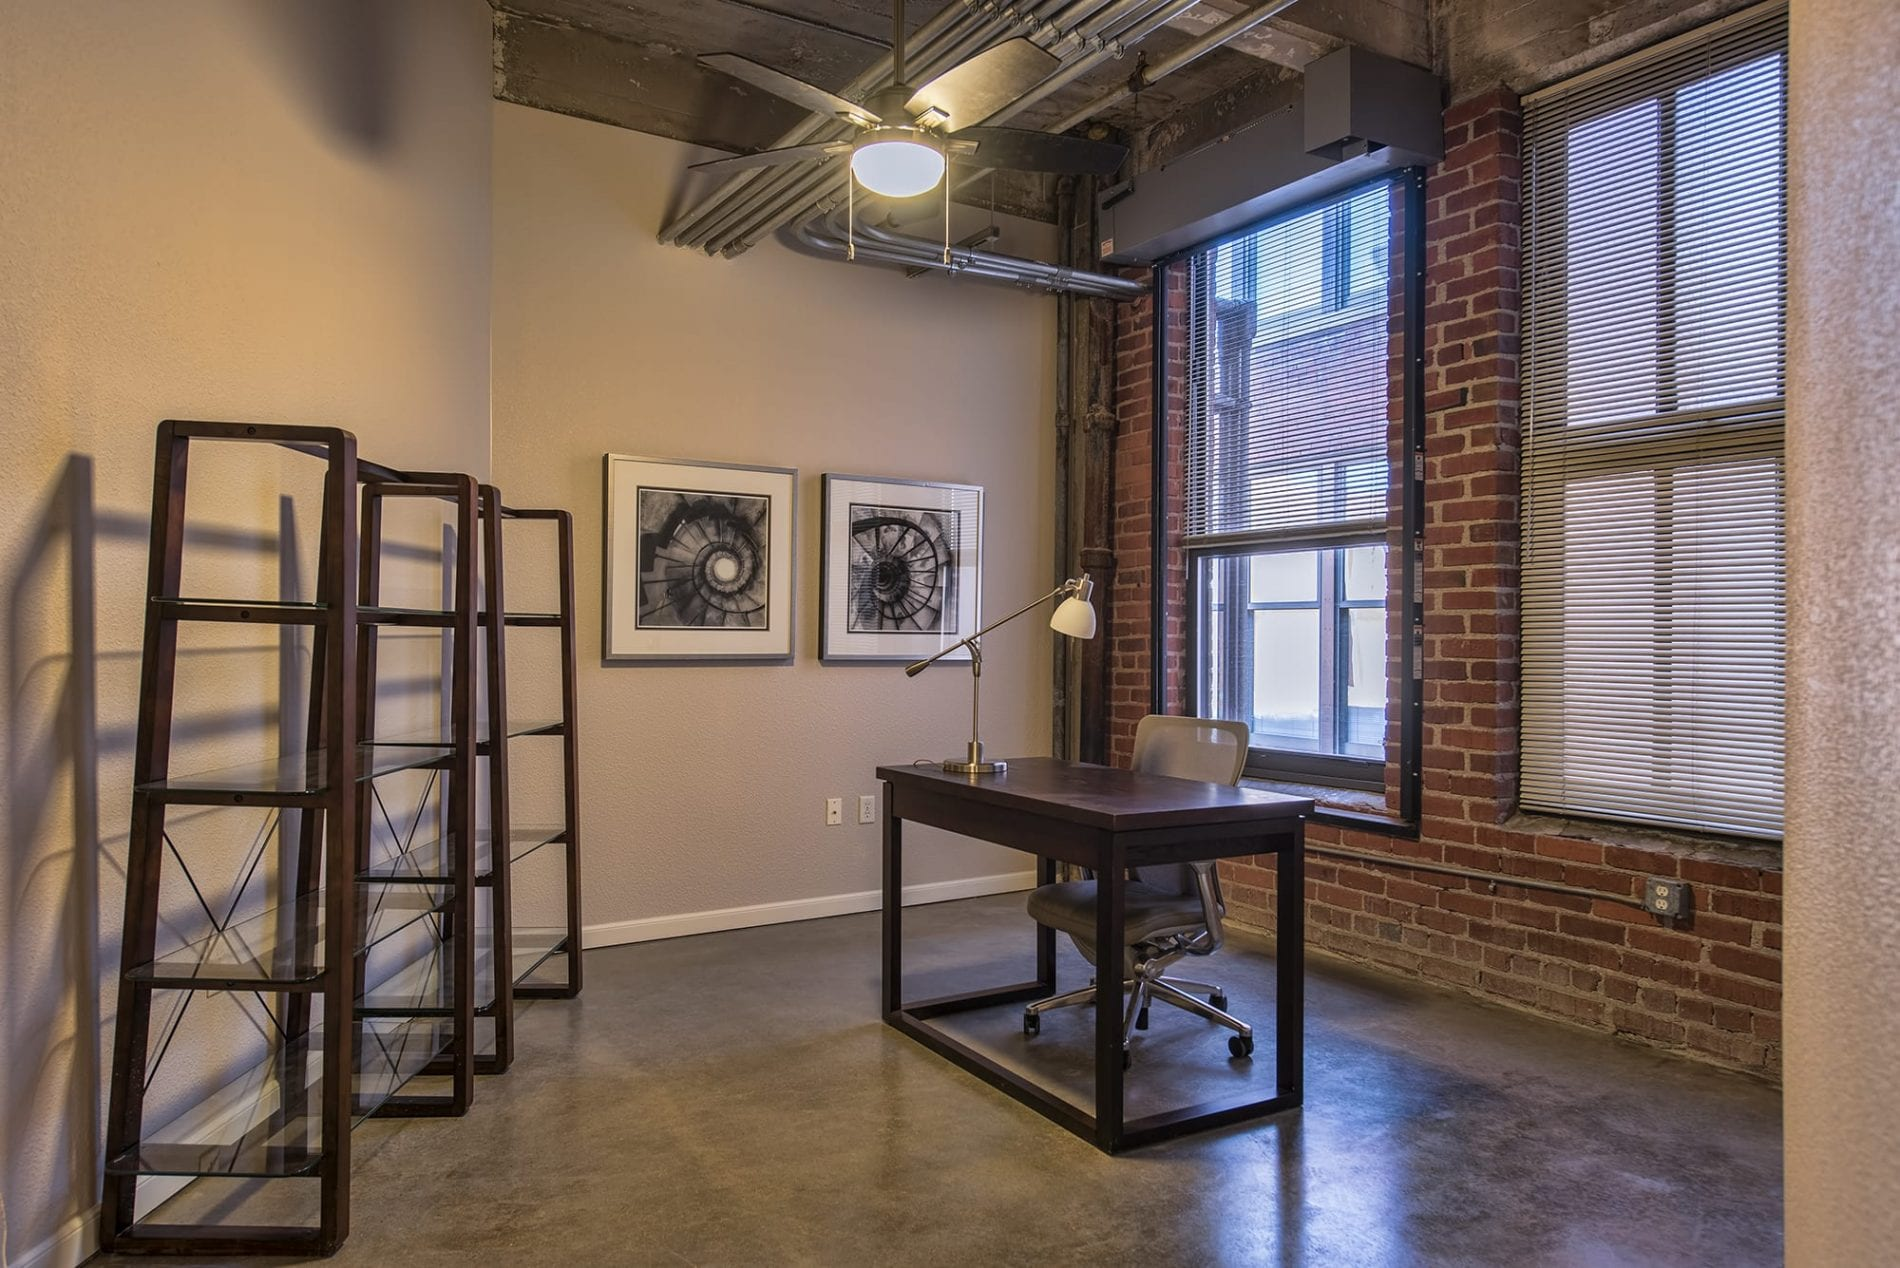 Featured for sale soho lofts 323 kansas city lofts for Apartments for sale in soho